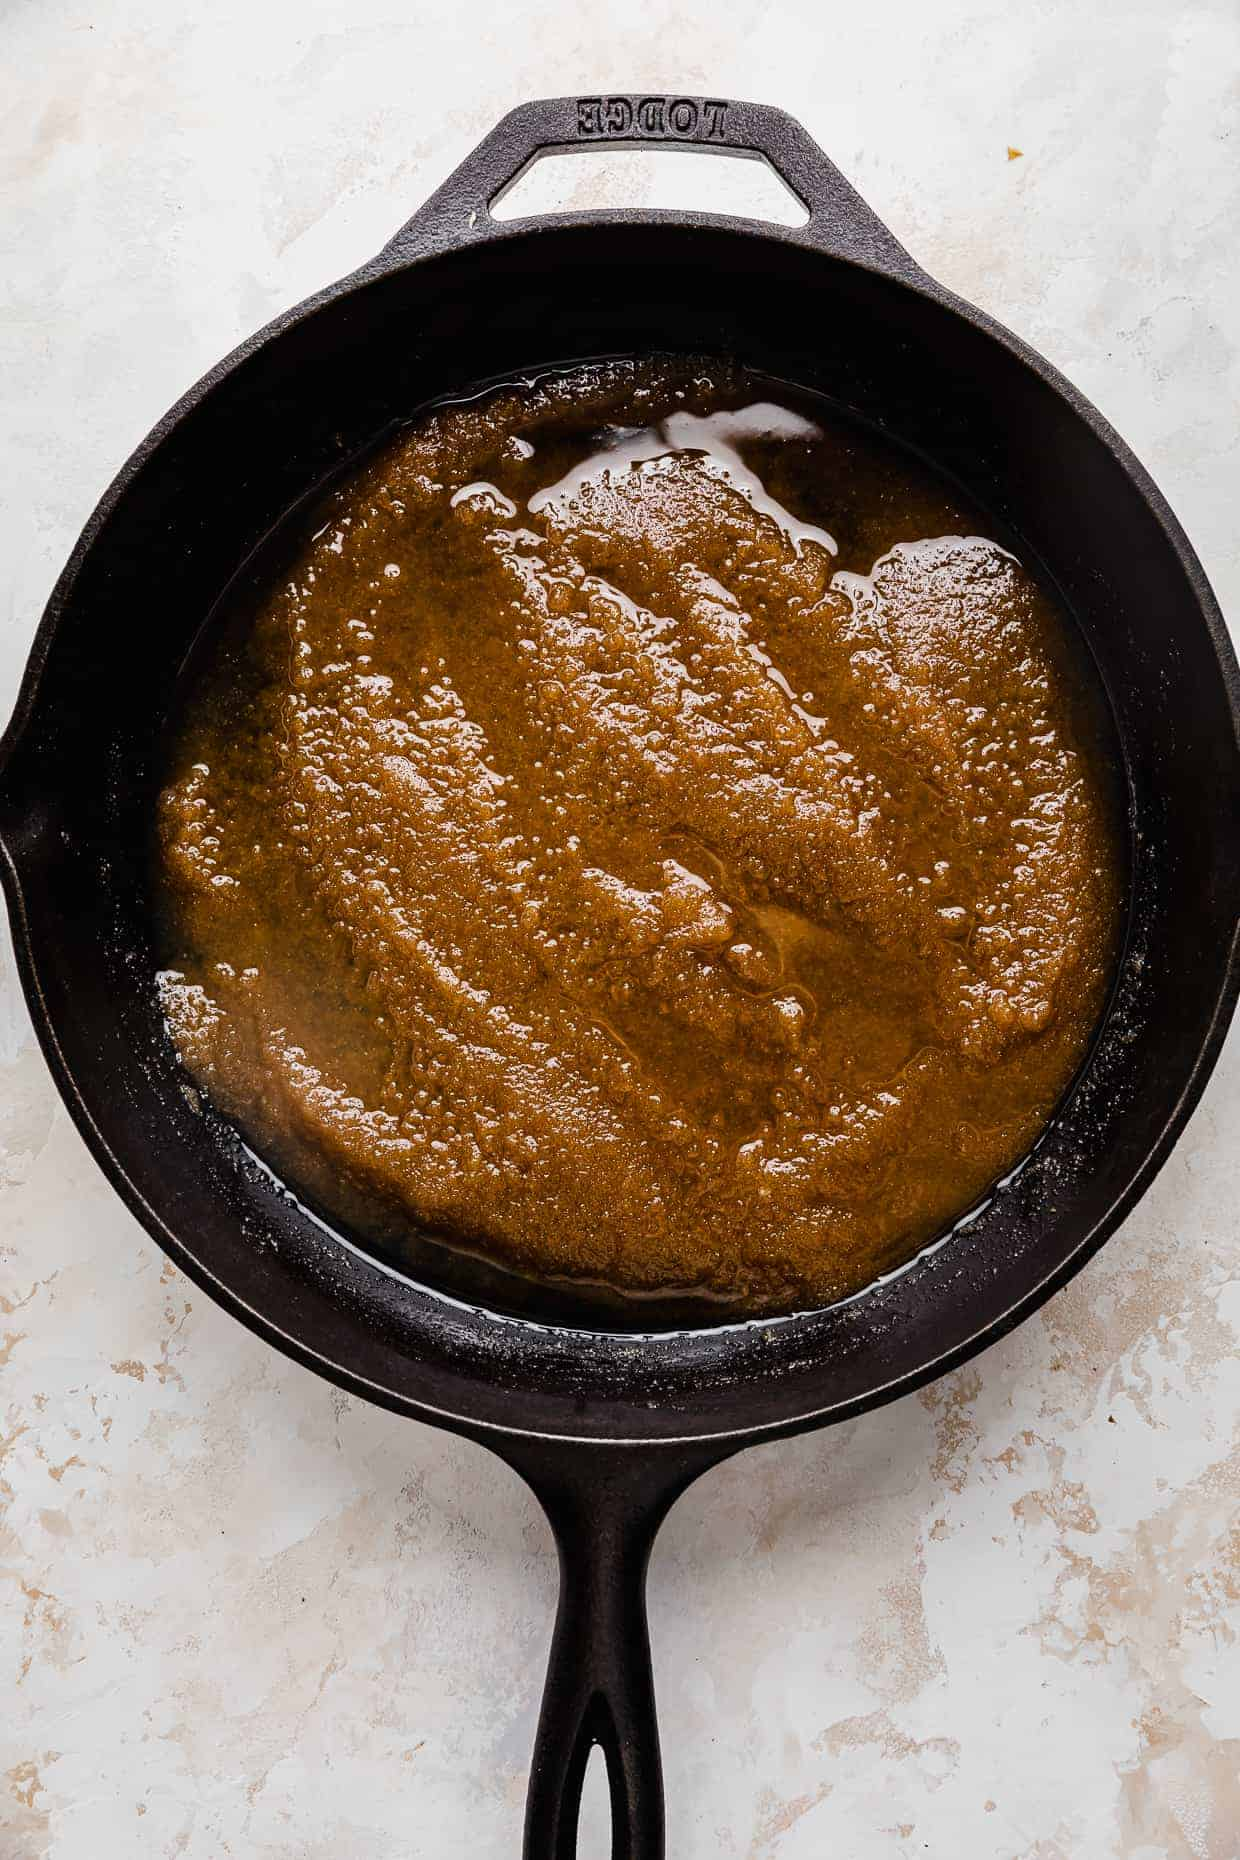 A cast iron skillet with a dark brown sugar and butter mixture spread along the bottom of the skillet.